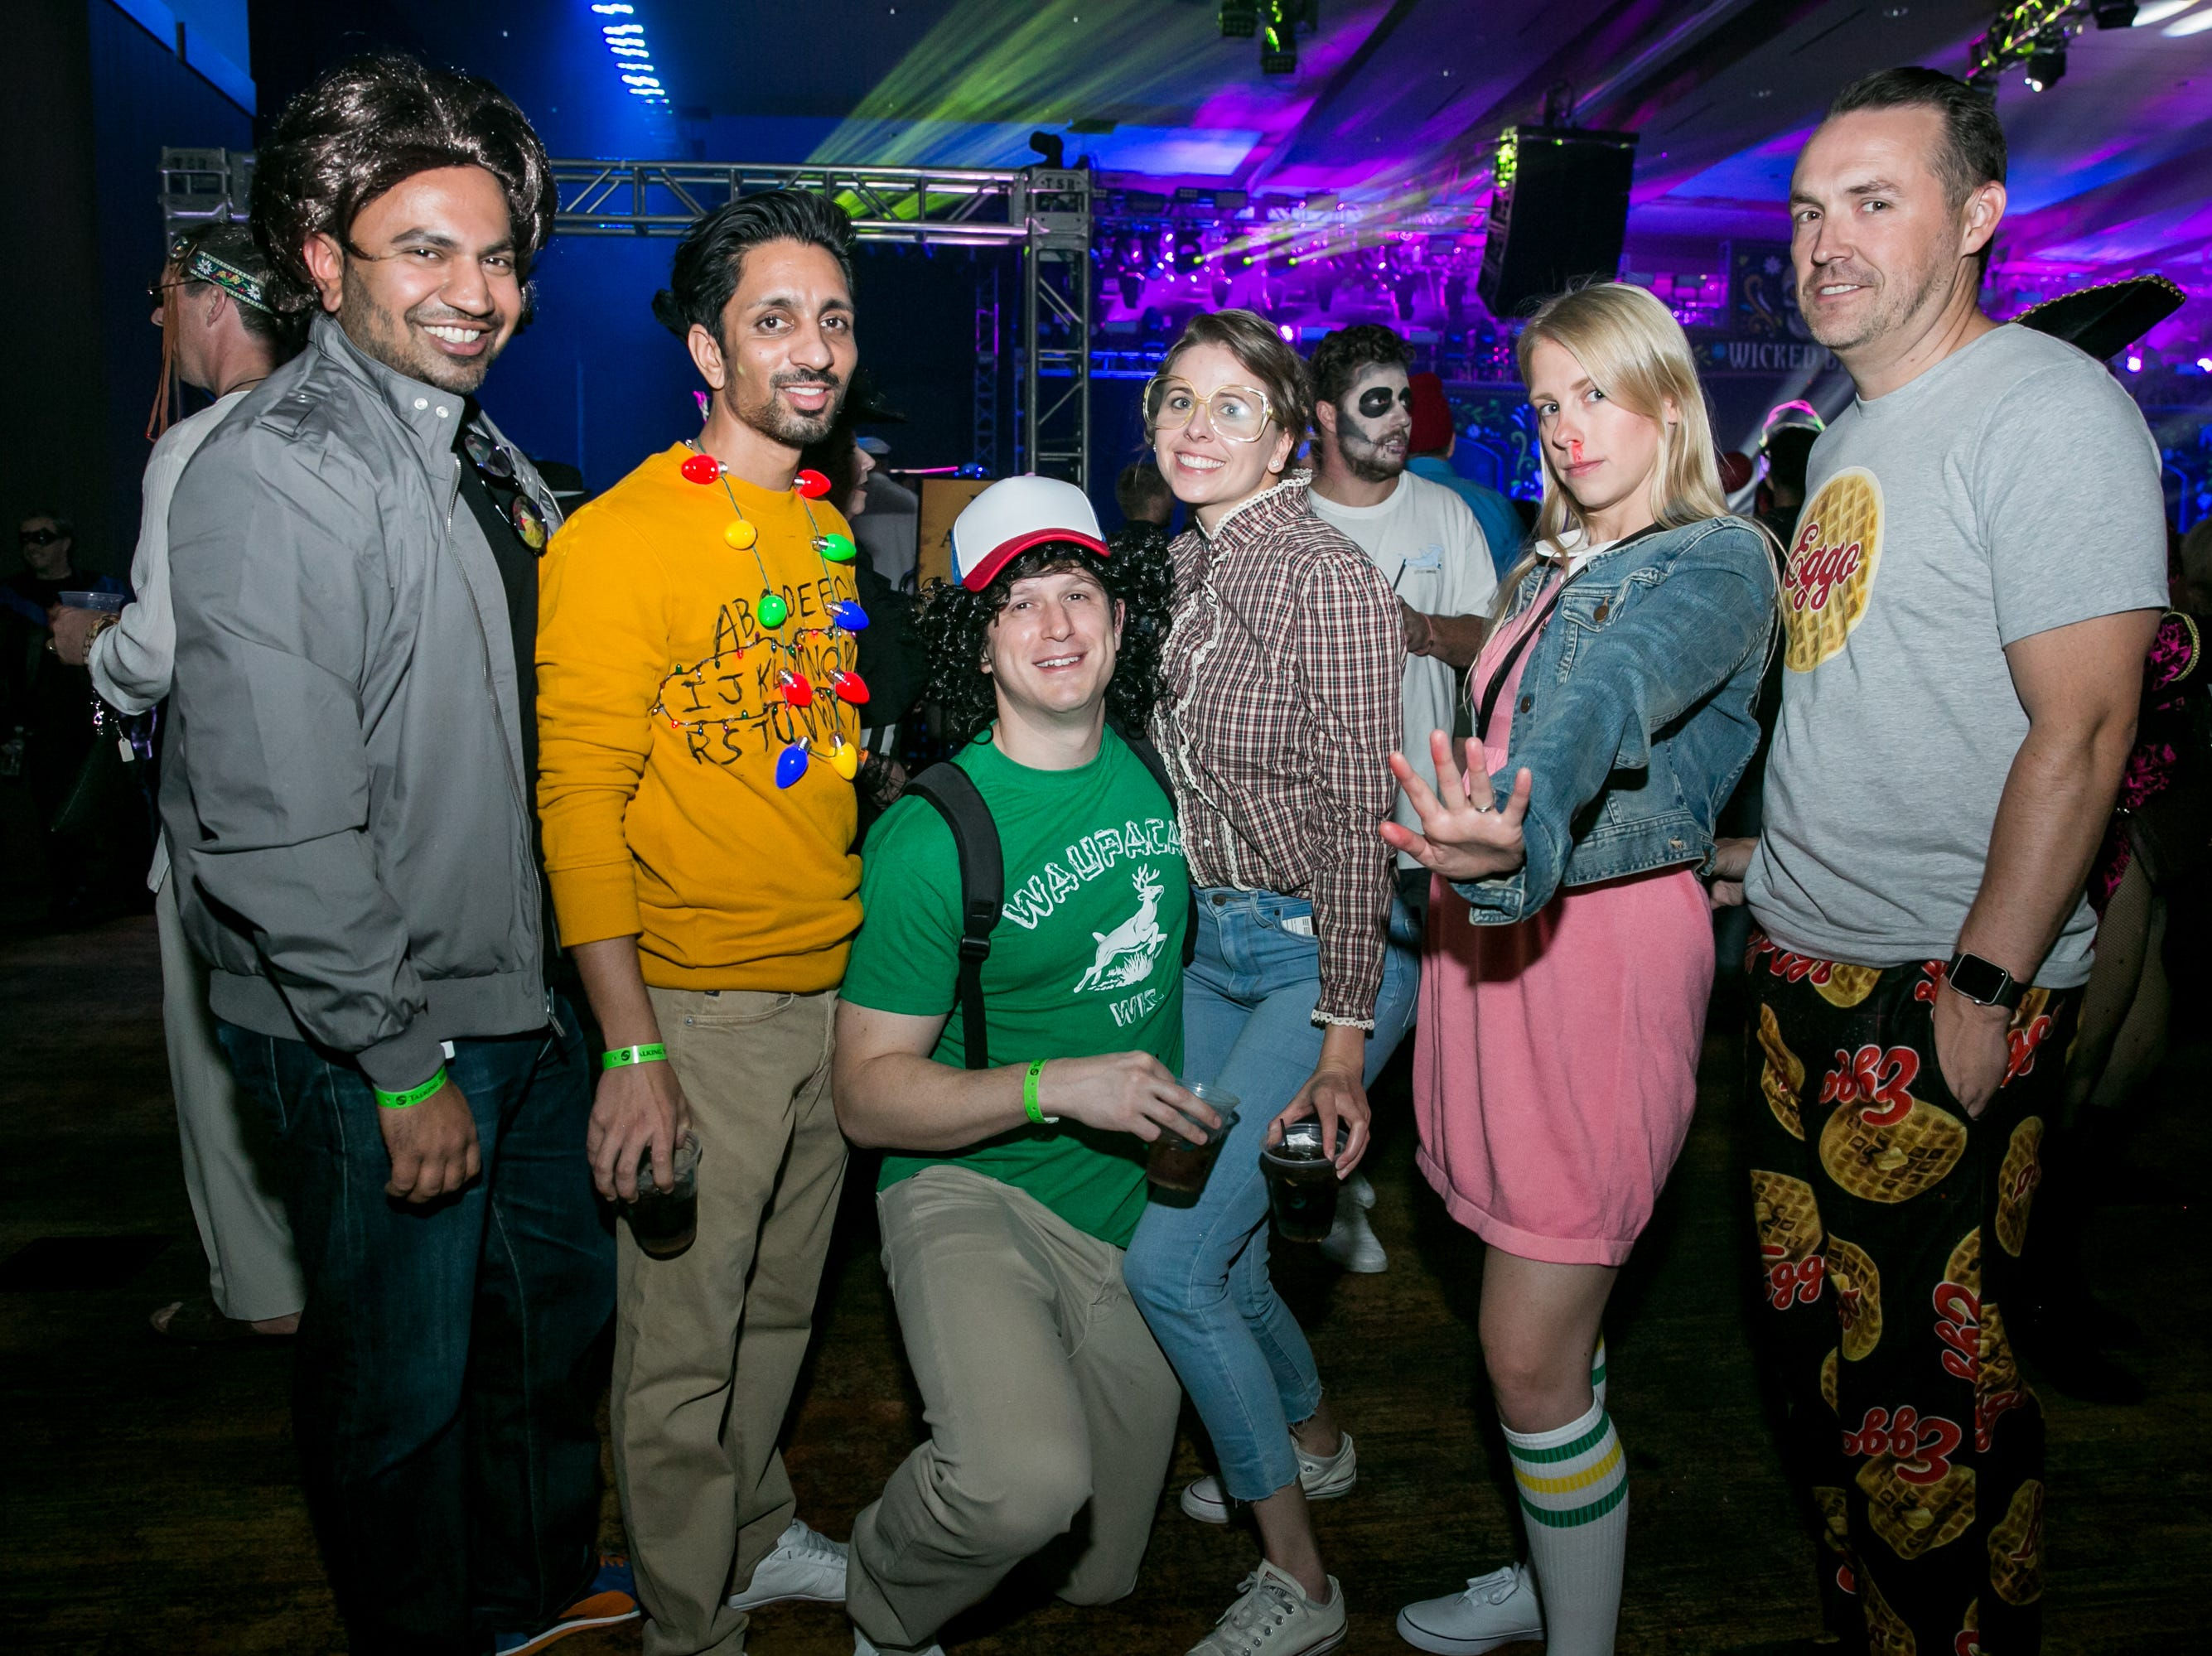 The Stranger Things crew made an appearance during Wicked Ball at Talking Stick Resort on Saturday, October 27, 2018.